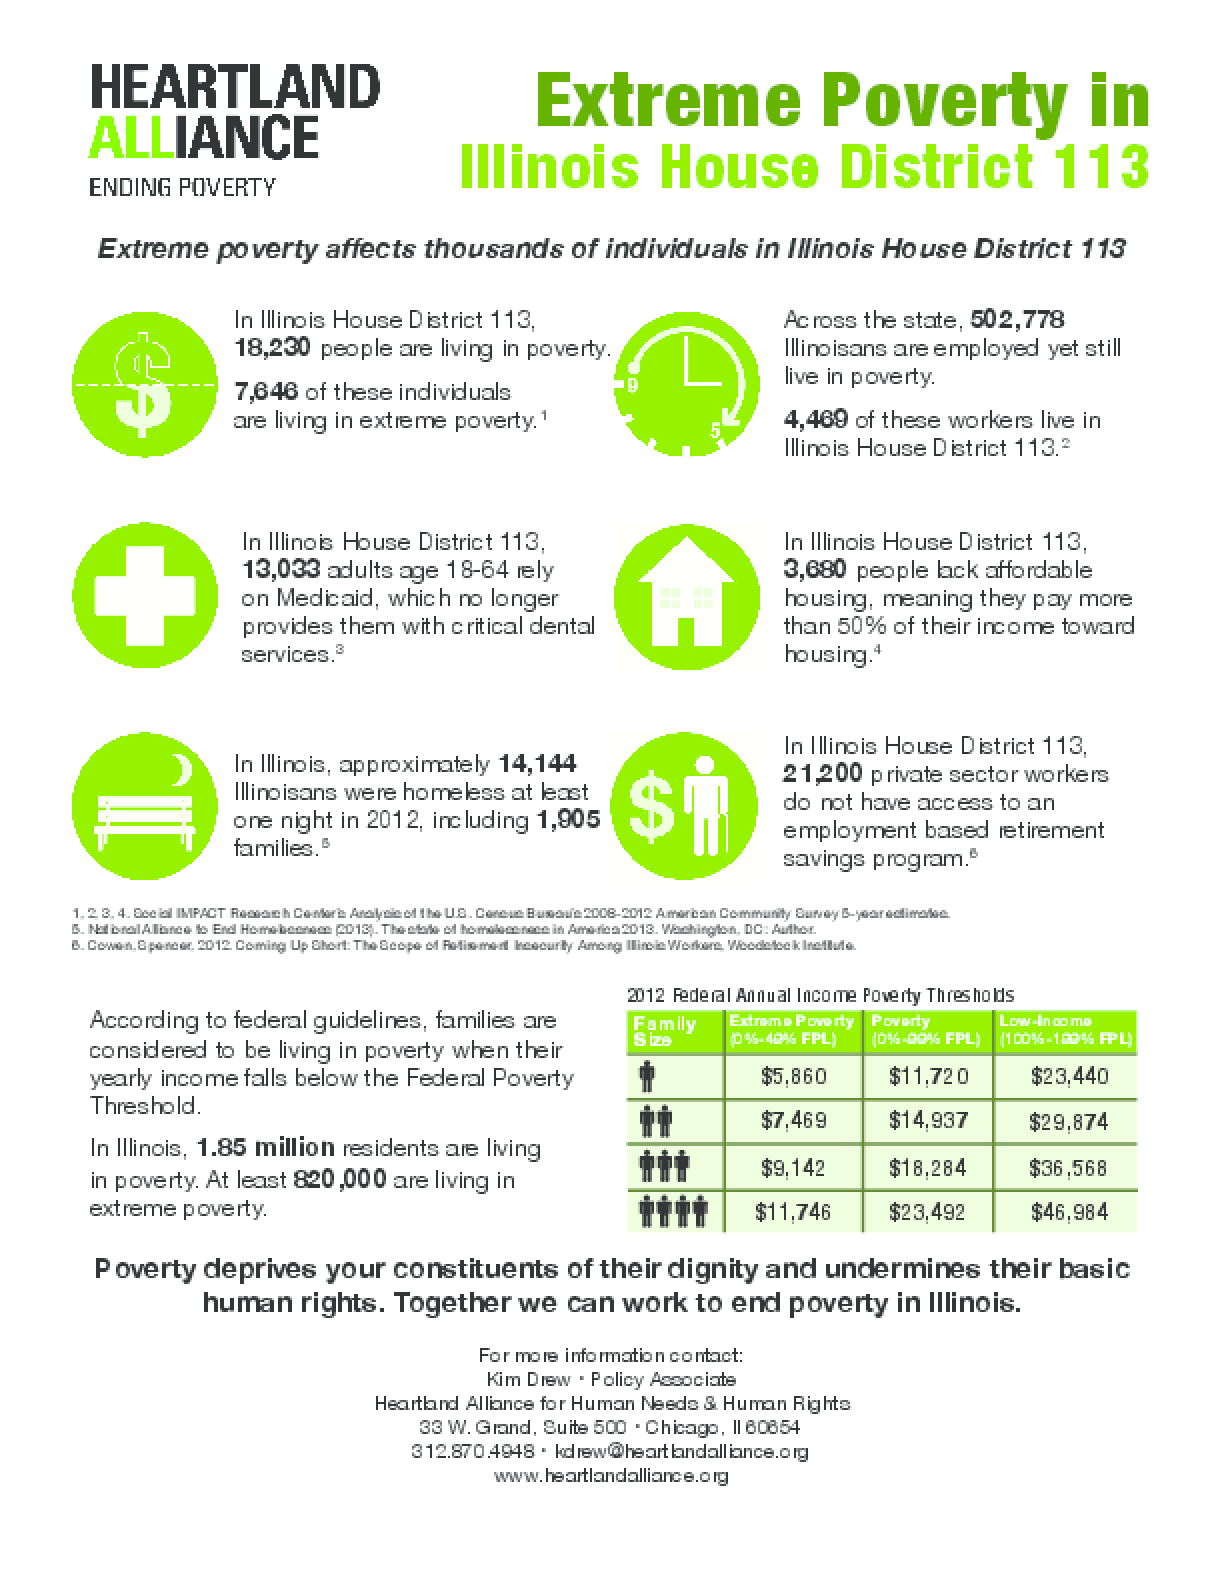 Poverty Fact Sheet for Illinois House District 113